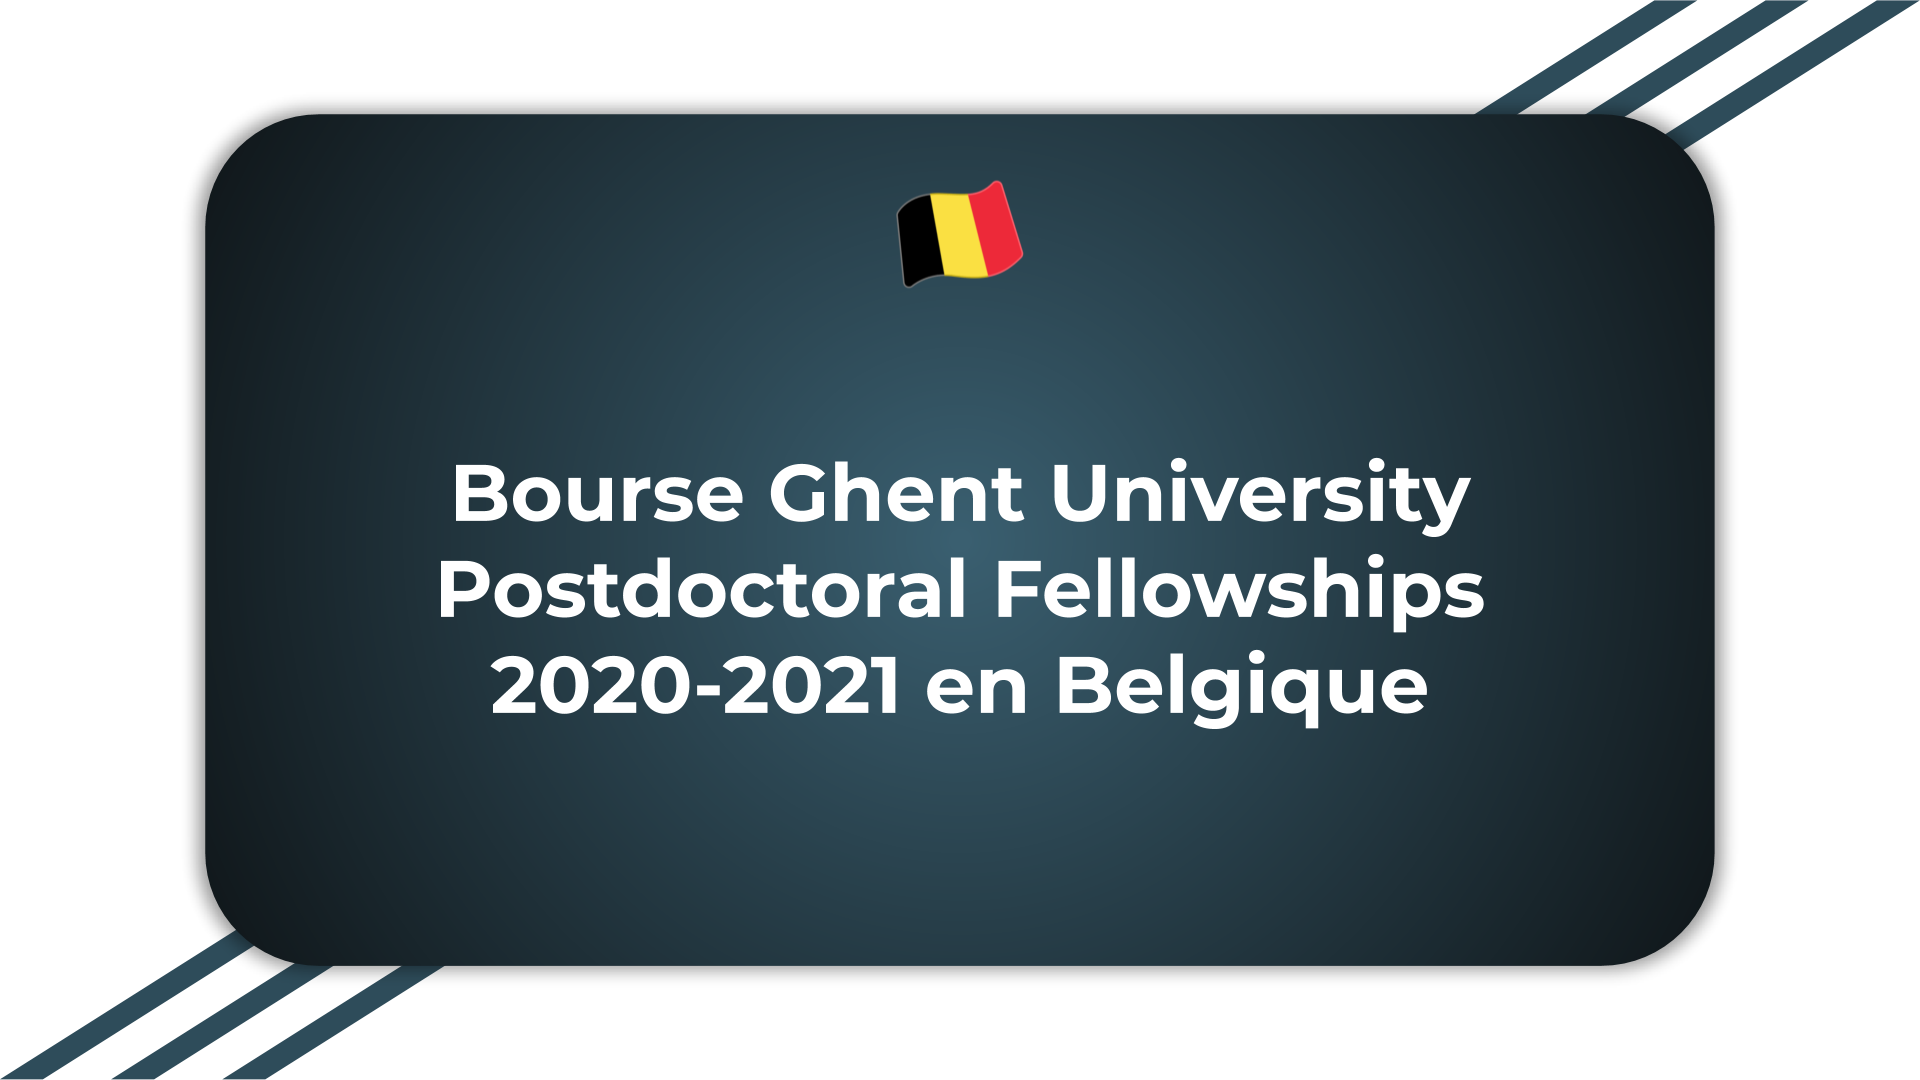 Bourse Ghent University Postdoctoral Fellowships